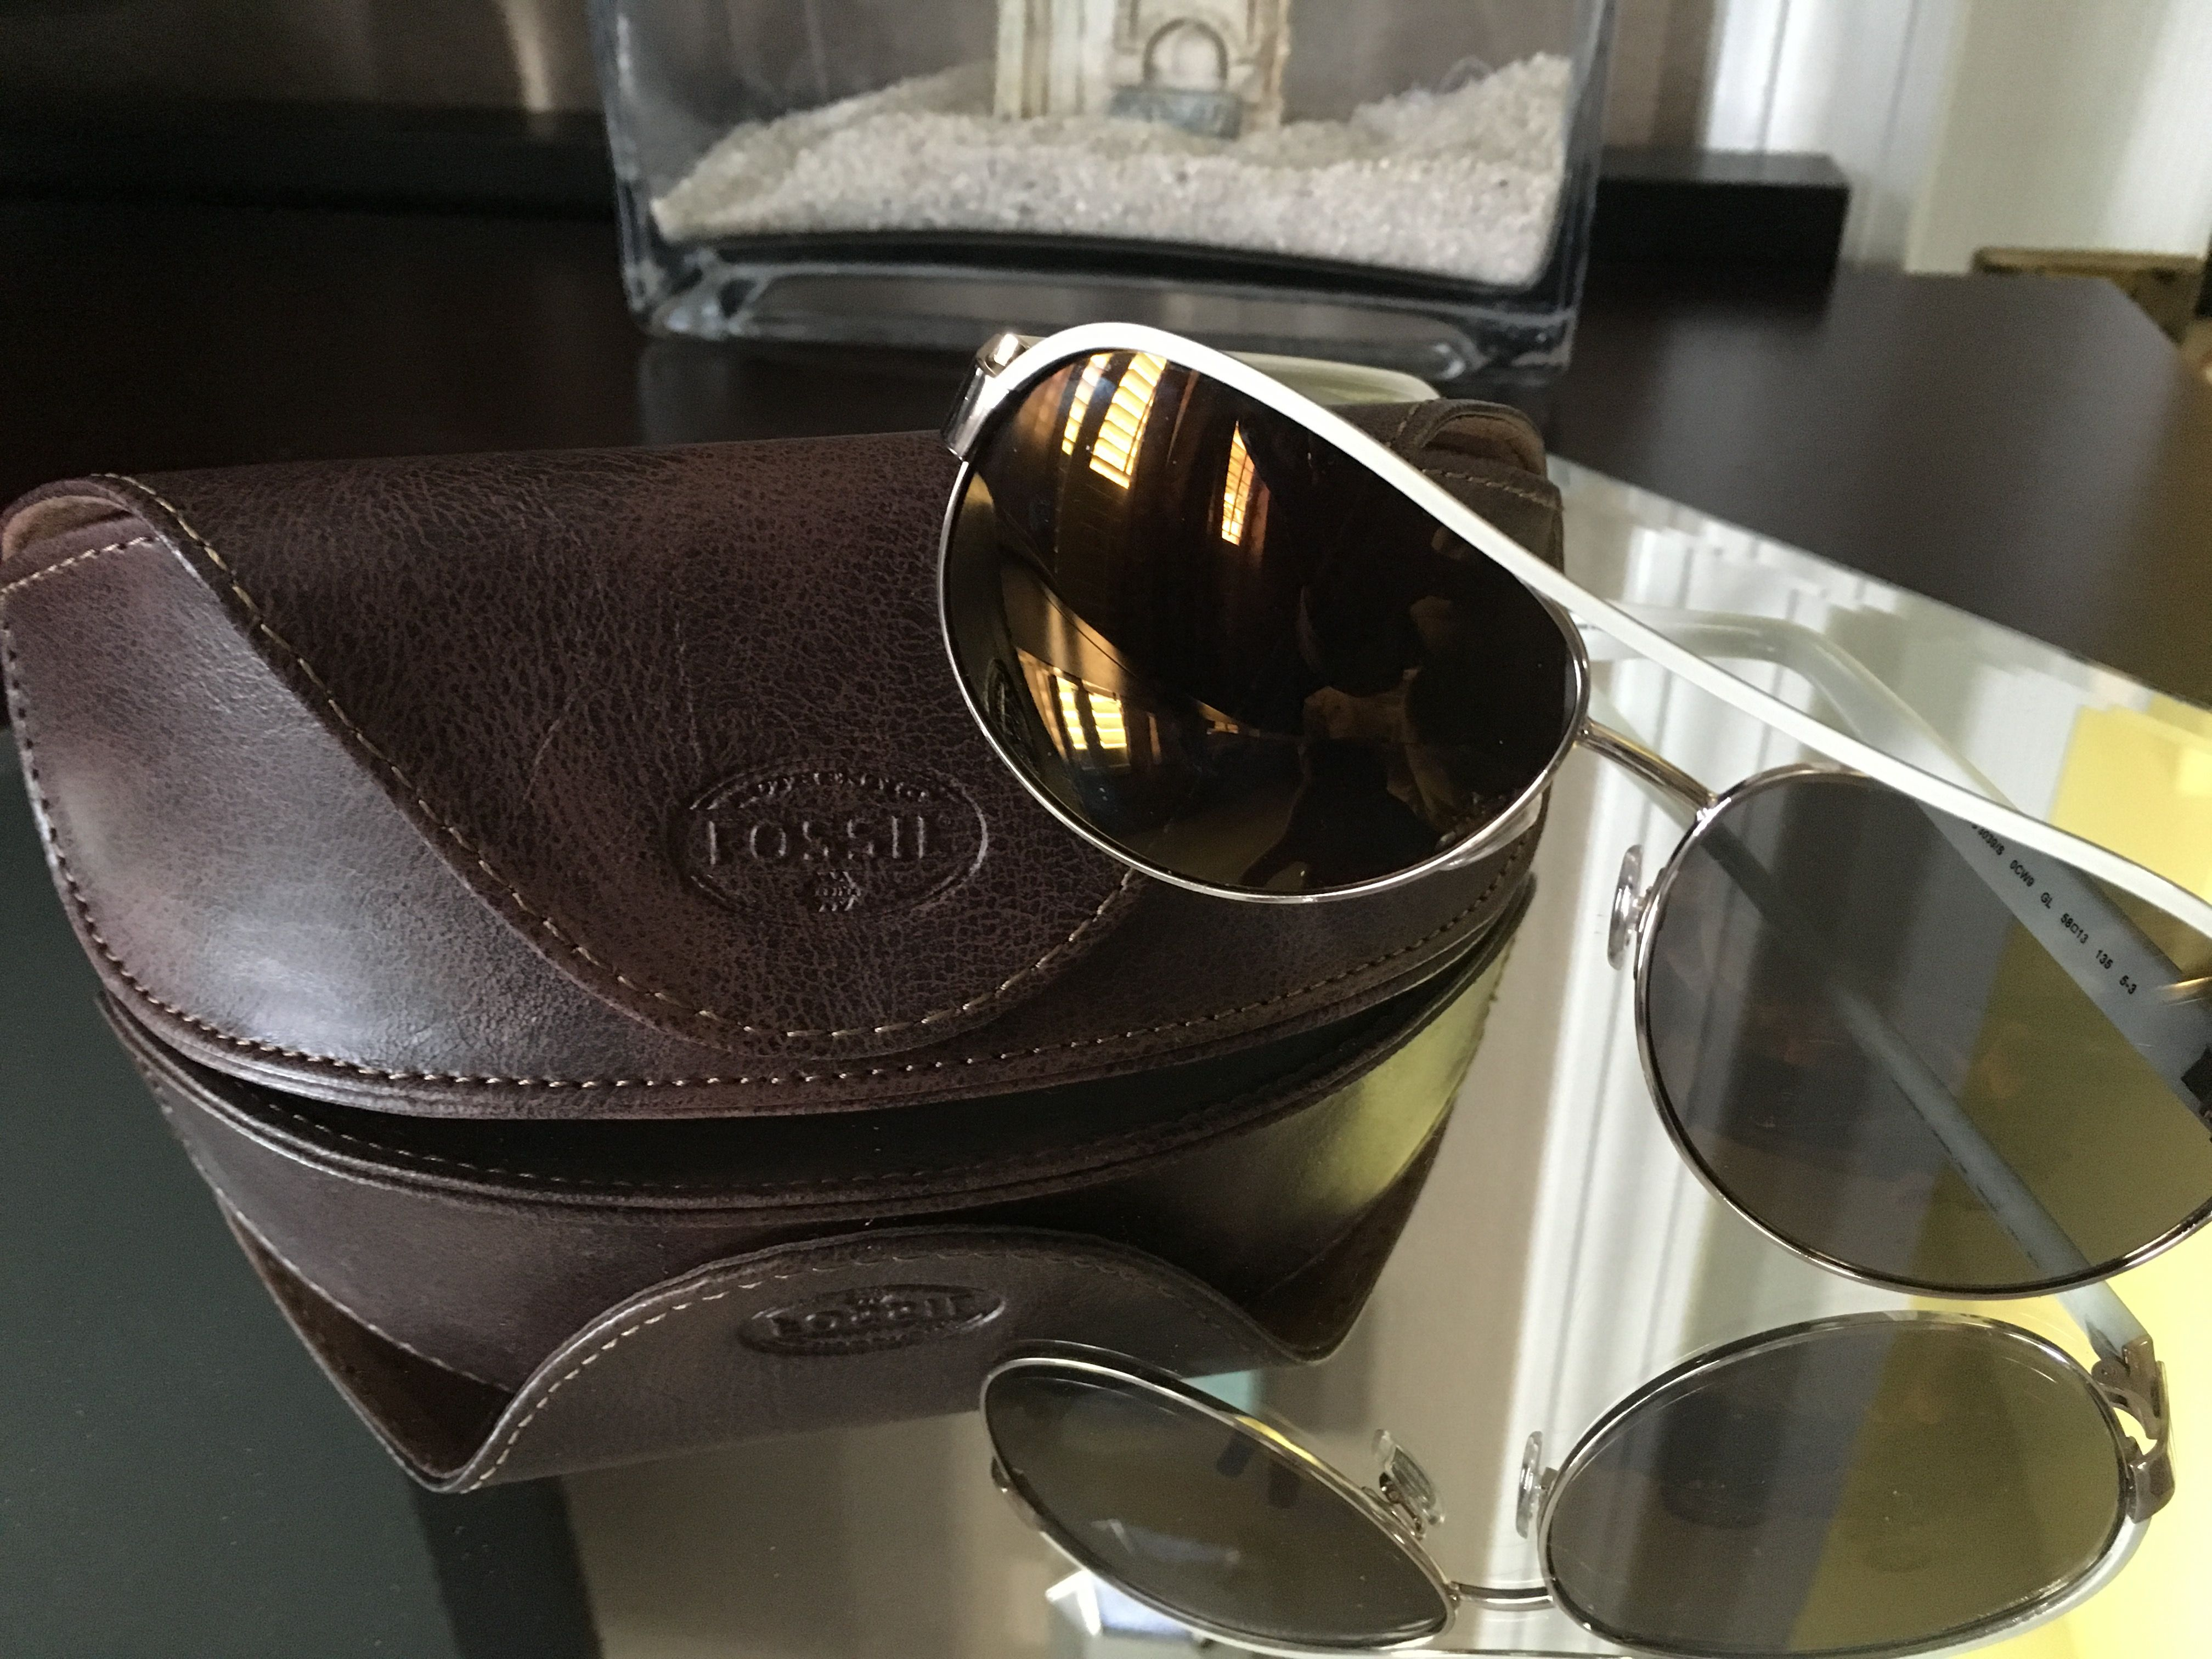 FOSSIL APPLEGATE AVIATOR SUNGLASSES $55.00 /the classic aviator is back with our sleek Edgefield frames. Crafted in a new, timeless shape, these classic sunglasses feature eye-catching gradient lenses.